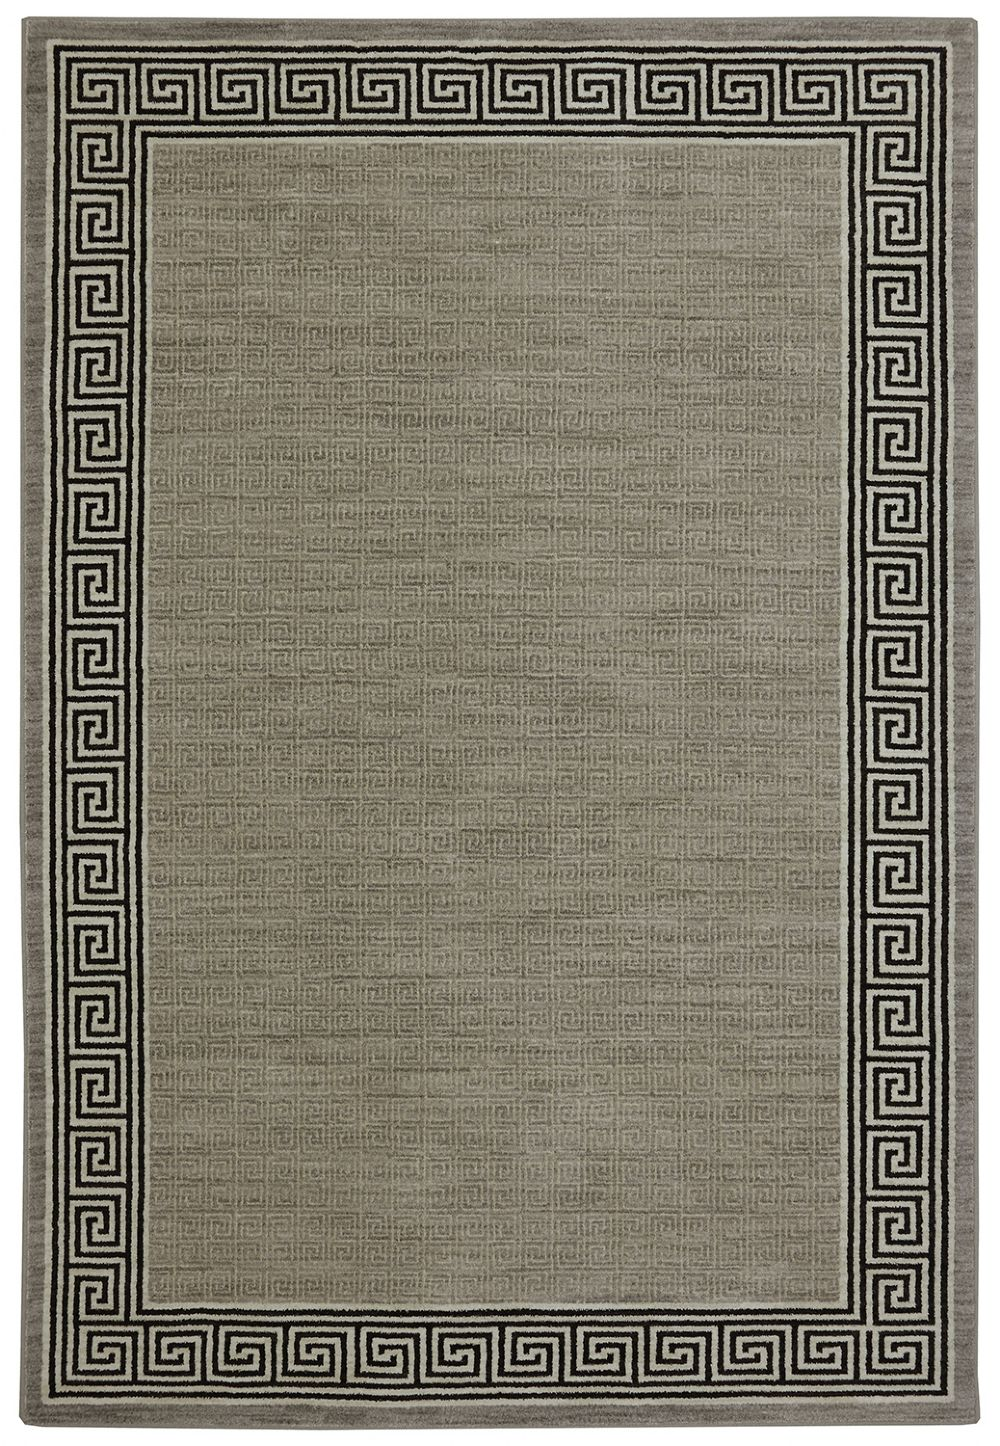 karastan pacifica transitional area rug collection